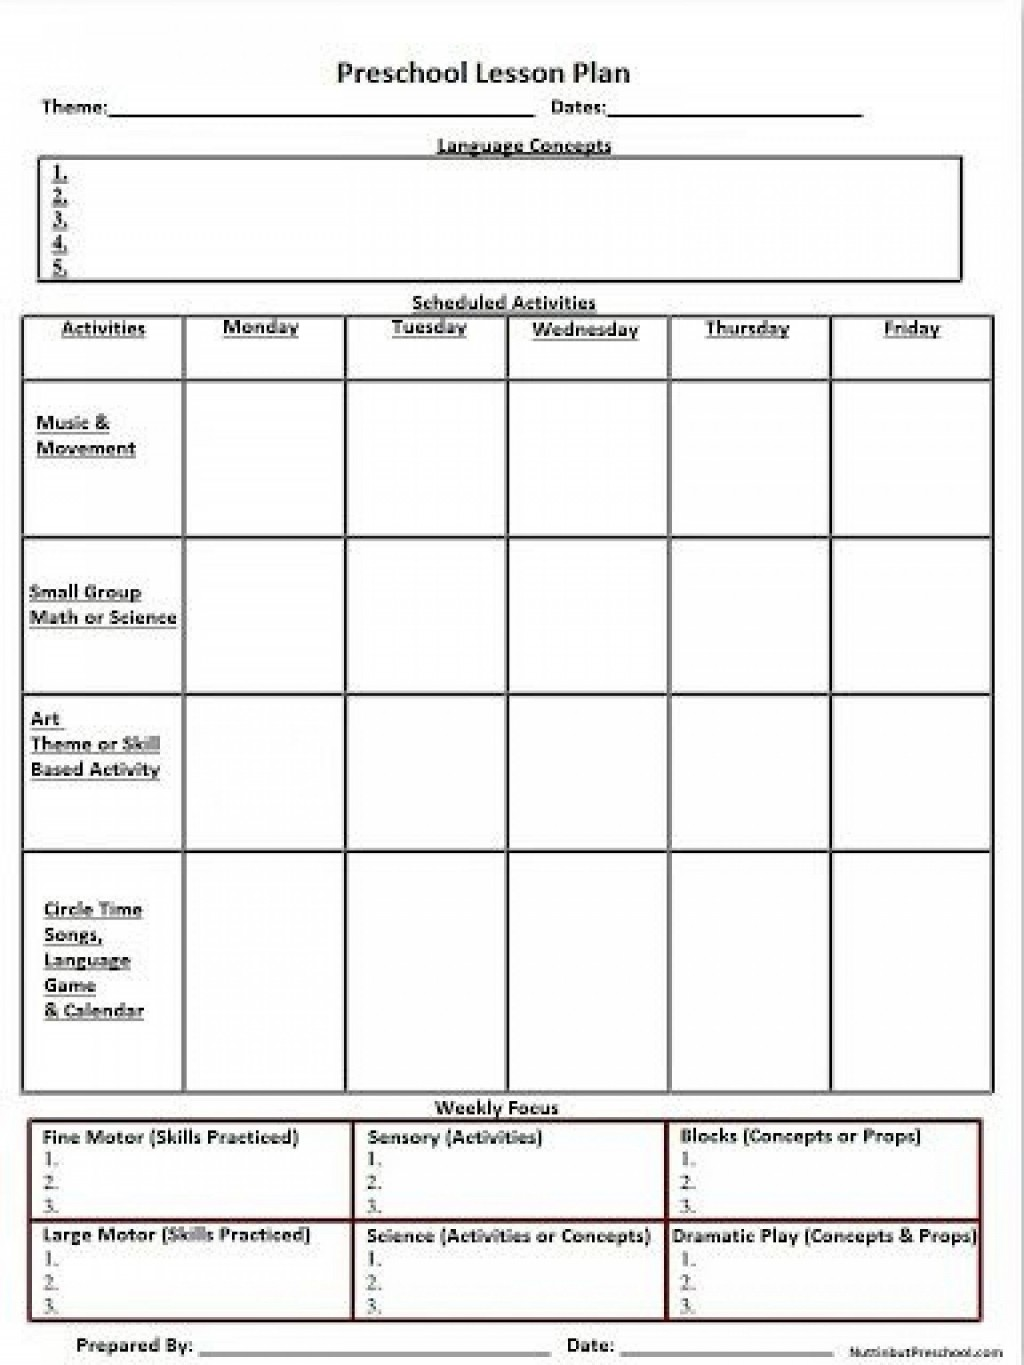 007 Shocking Weekly Lesson Plan Template High School Def  For Science Teacher Math Example English PdfLarge